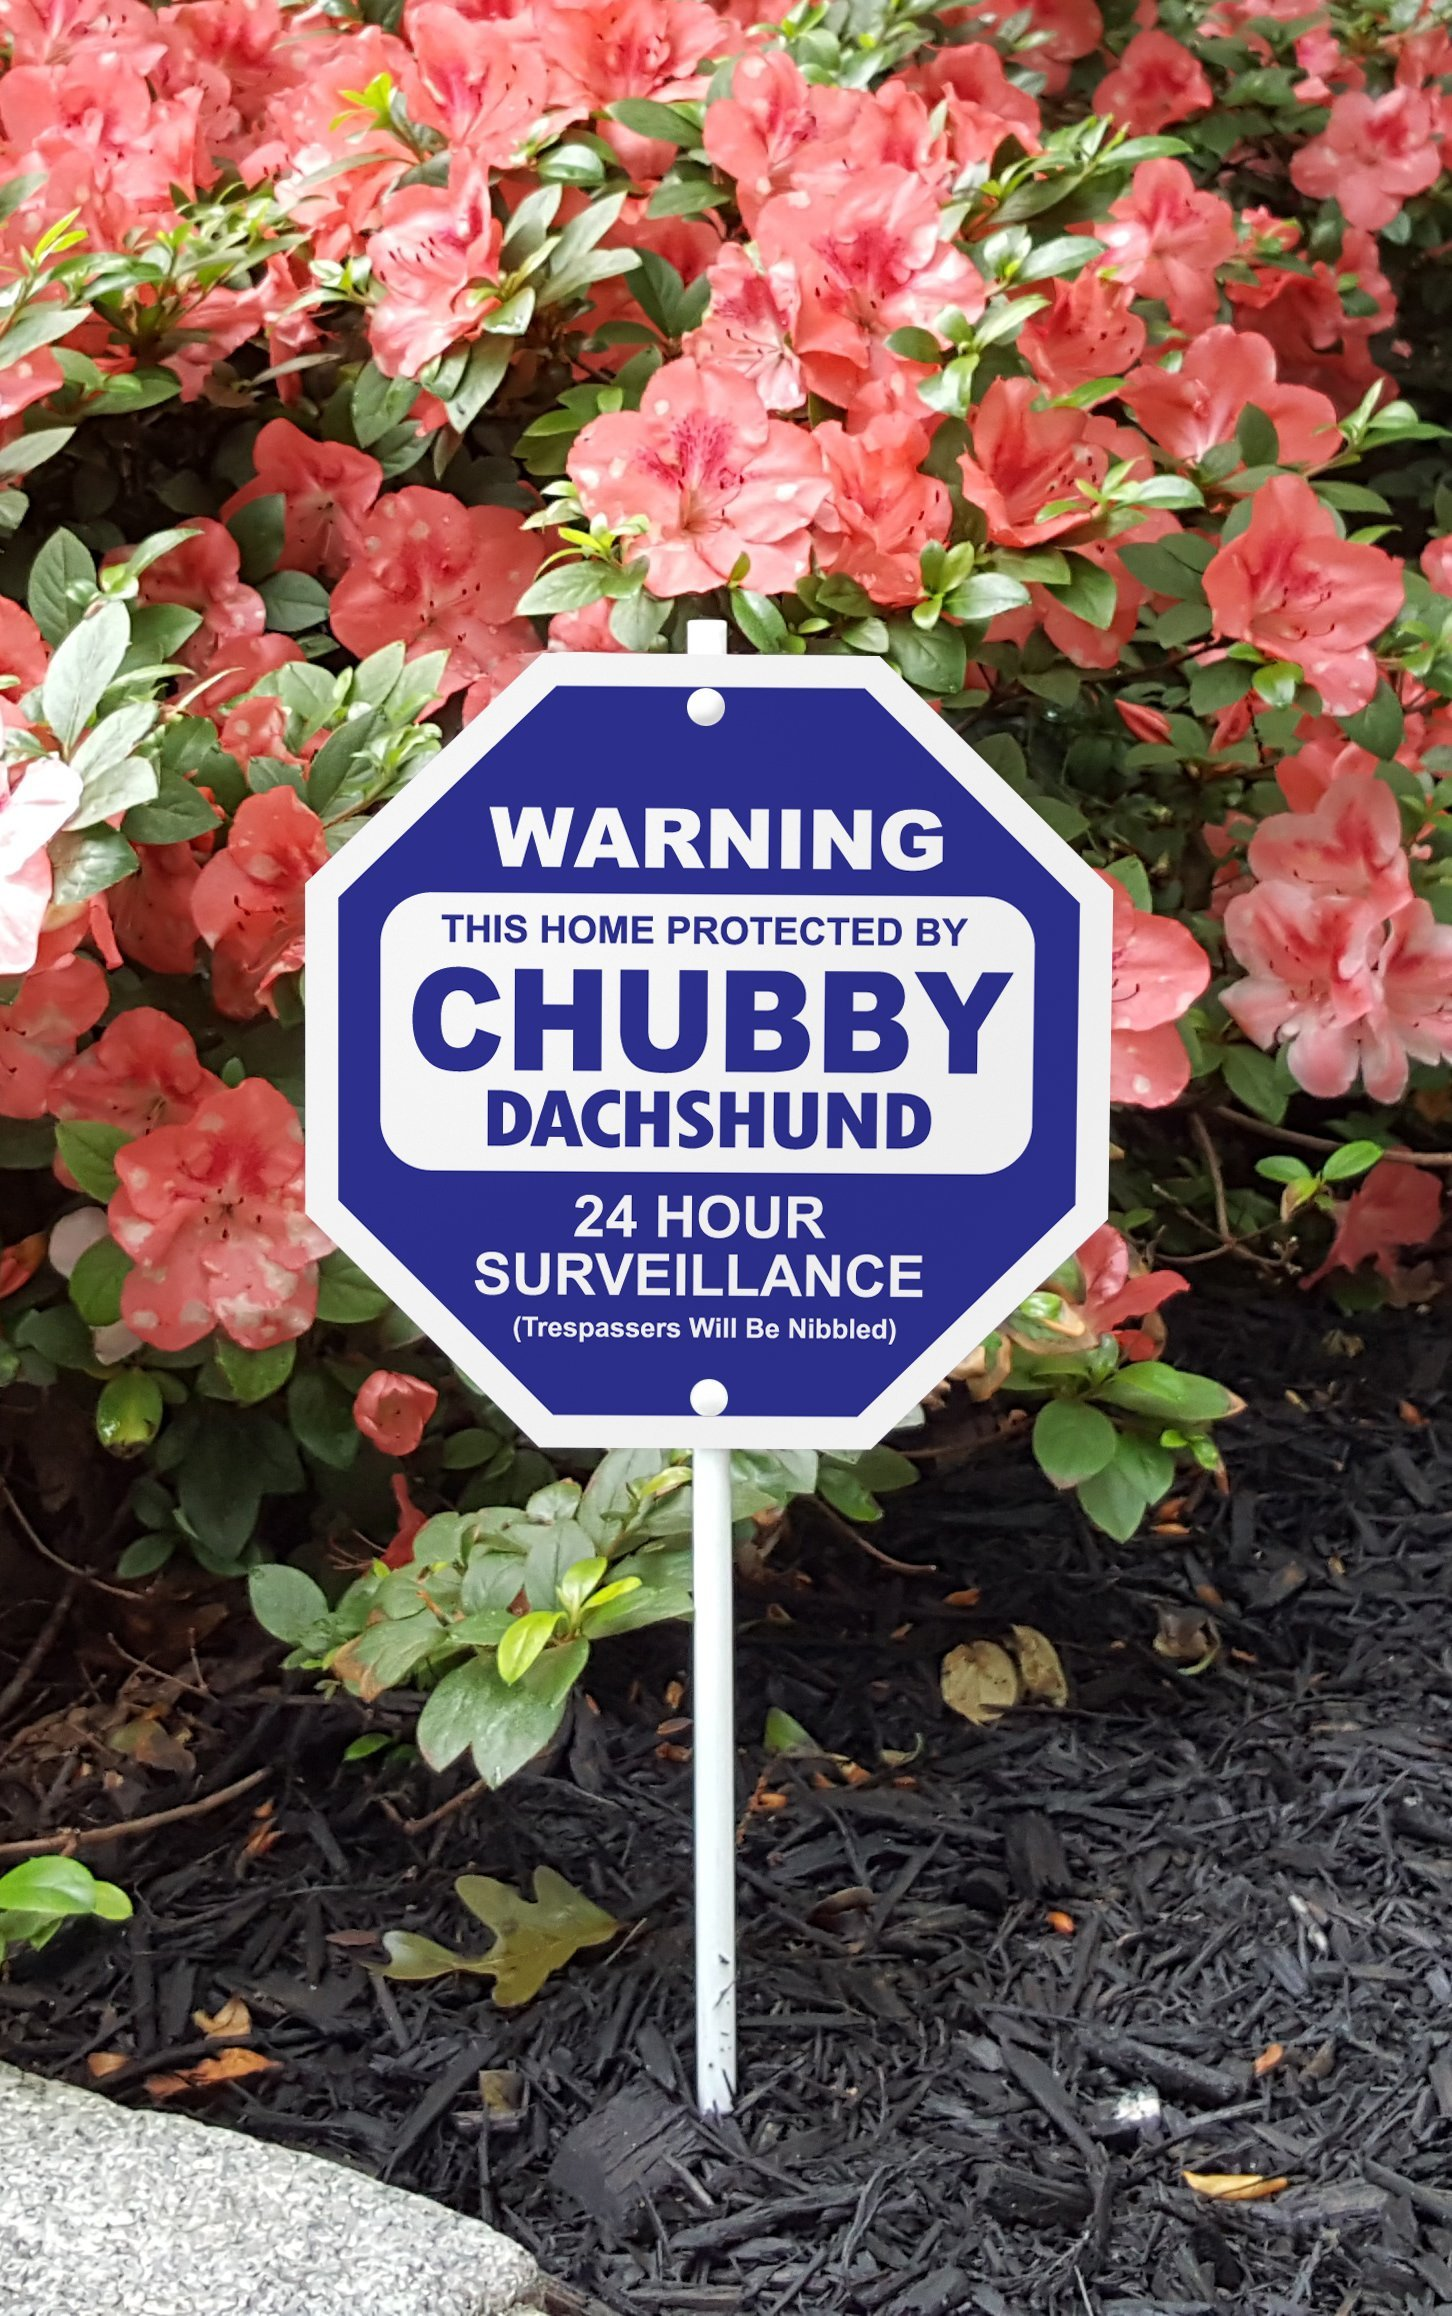 Imagine This Chubby Dachshund Silly Security Sign